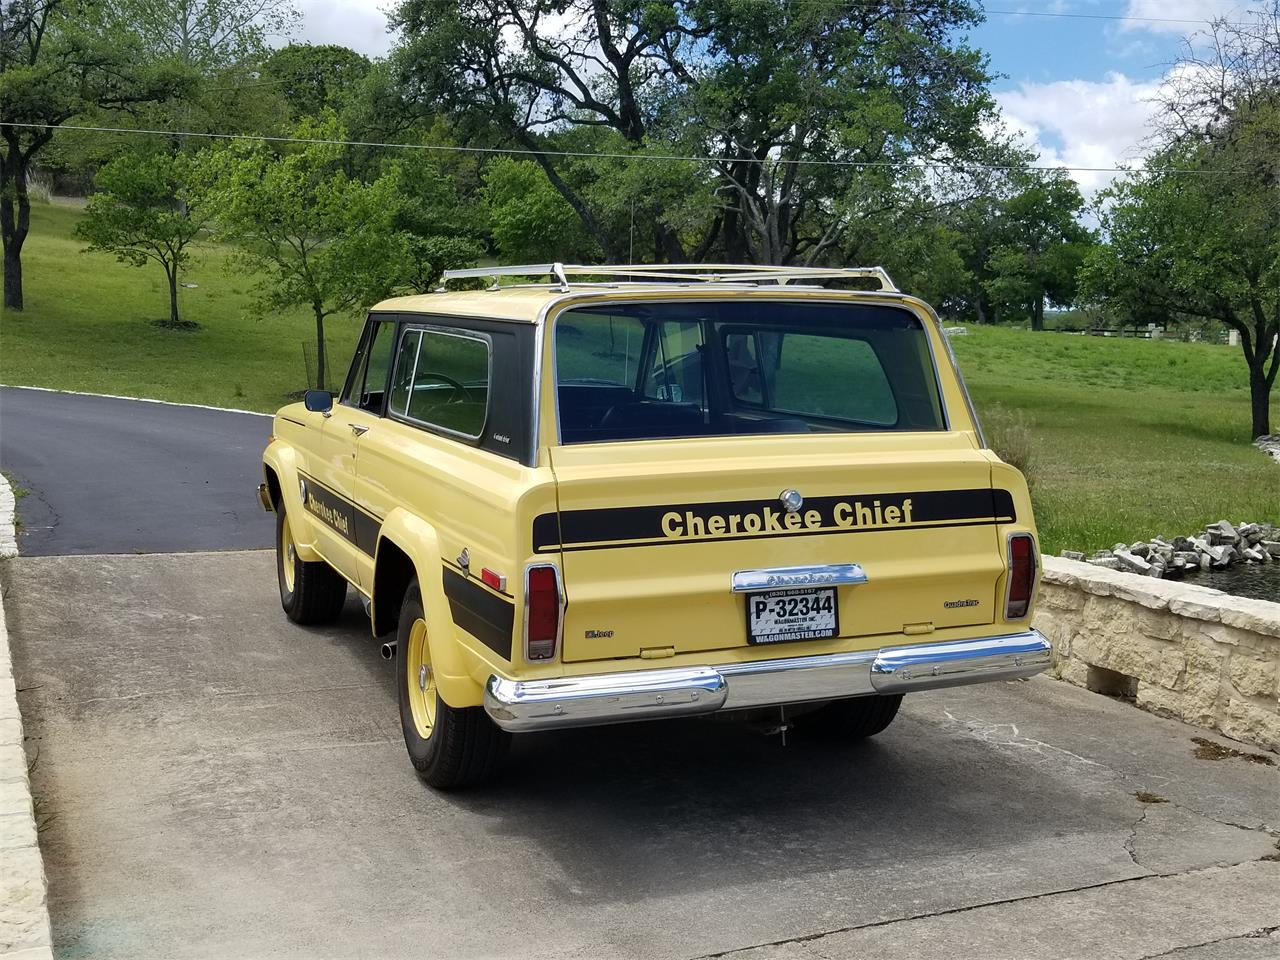 1979 Jeep Cherokee Chief for sale in Kerrville, TX – photo 8